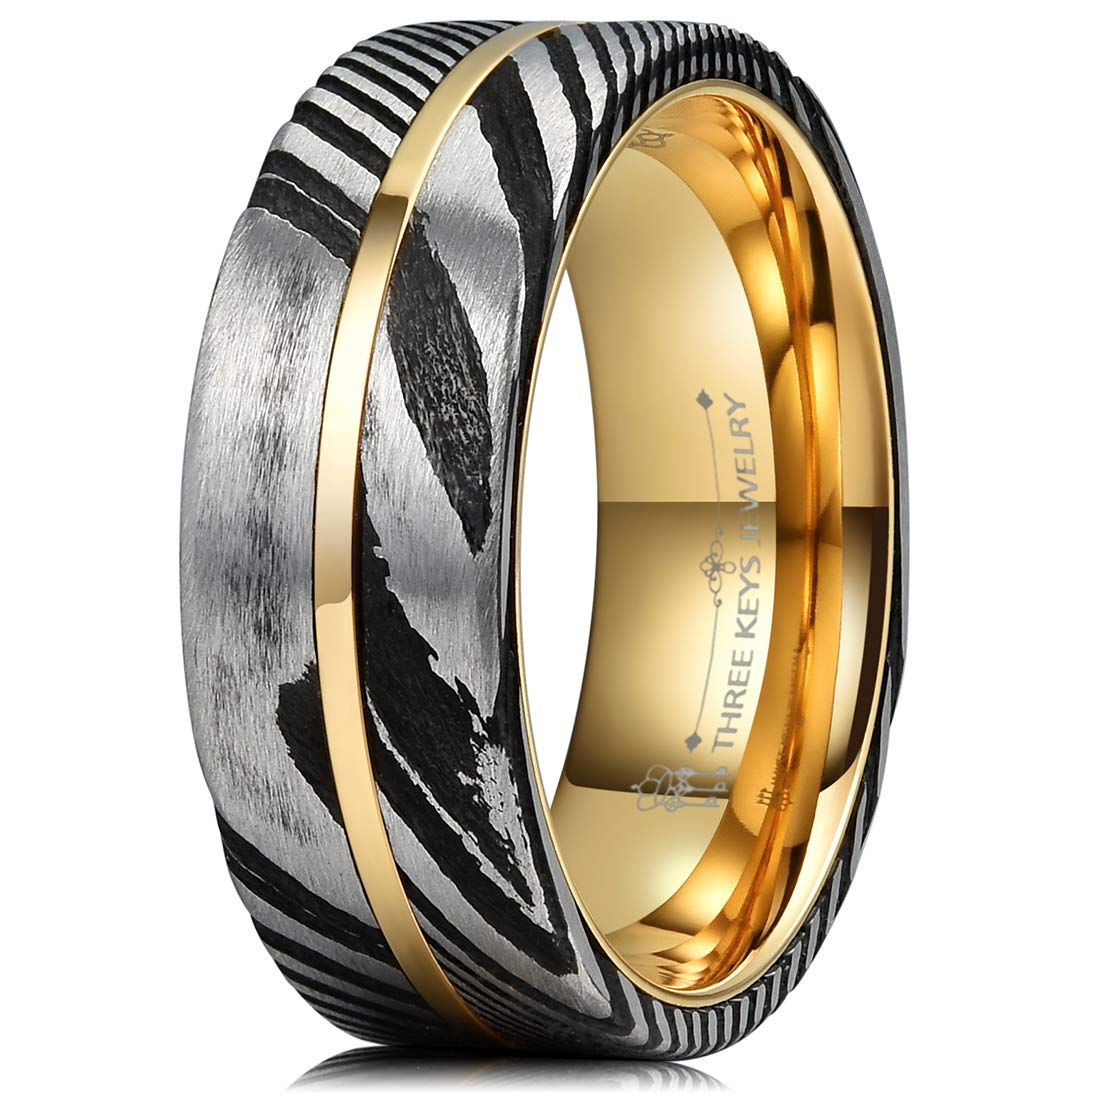 Three Keys Jewelry 8mm Black Damascus Steel Mens Wedding Ring Domed Wood Grain Plated Gold Liner & Inlay Damascus Wedding Band Engagement Ring Size 9